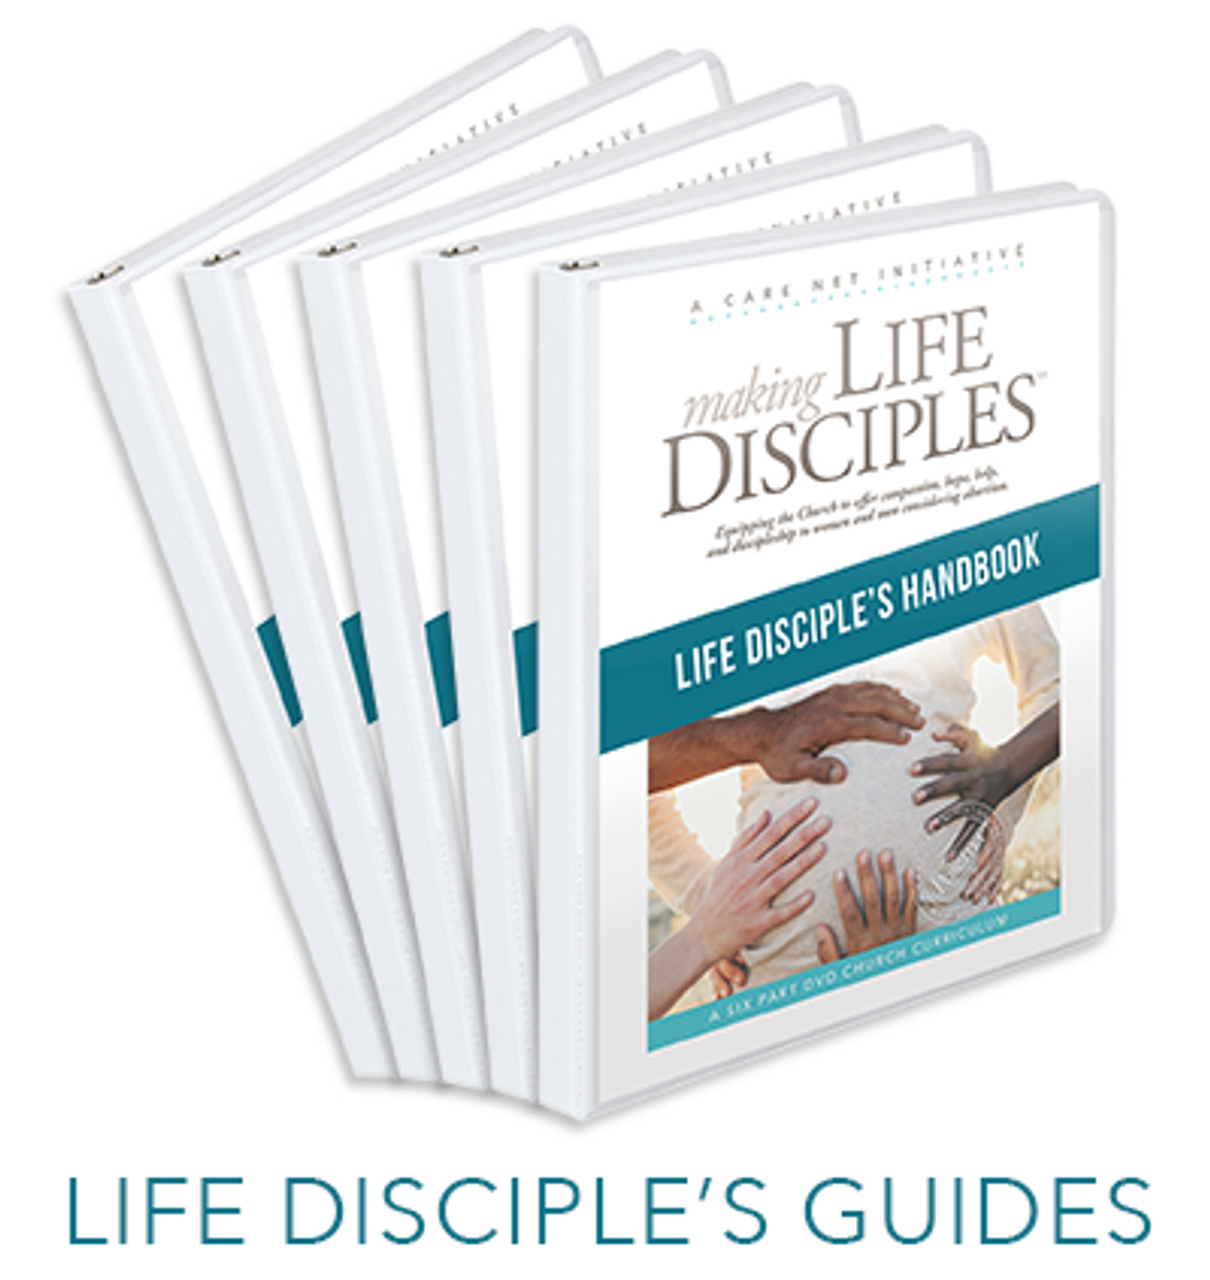 Making Life Disciples Handbook Participant Guides (Bundle of 5)